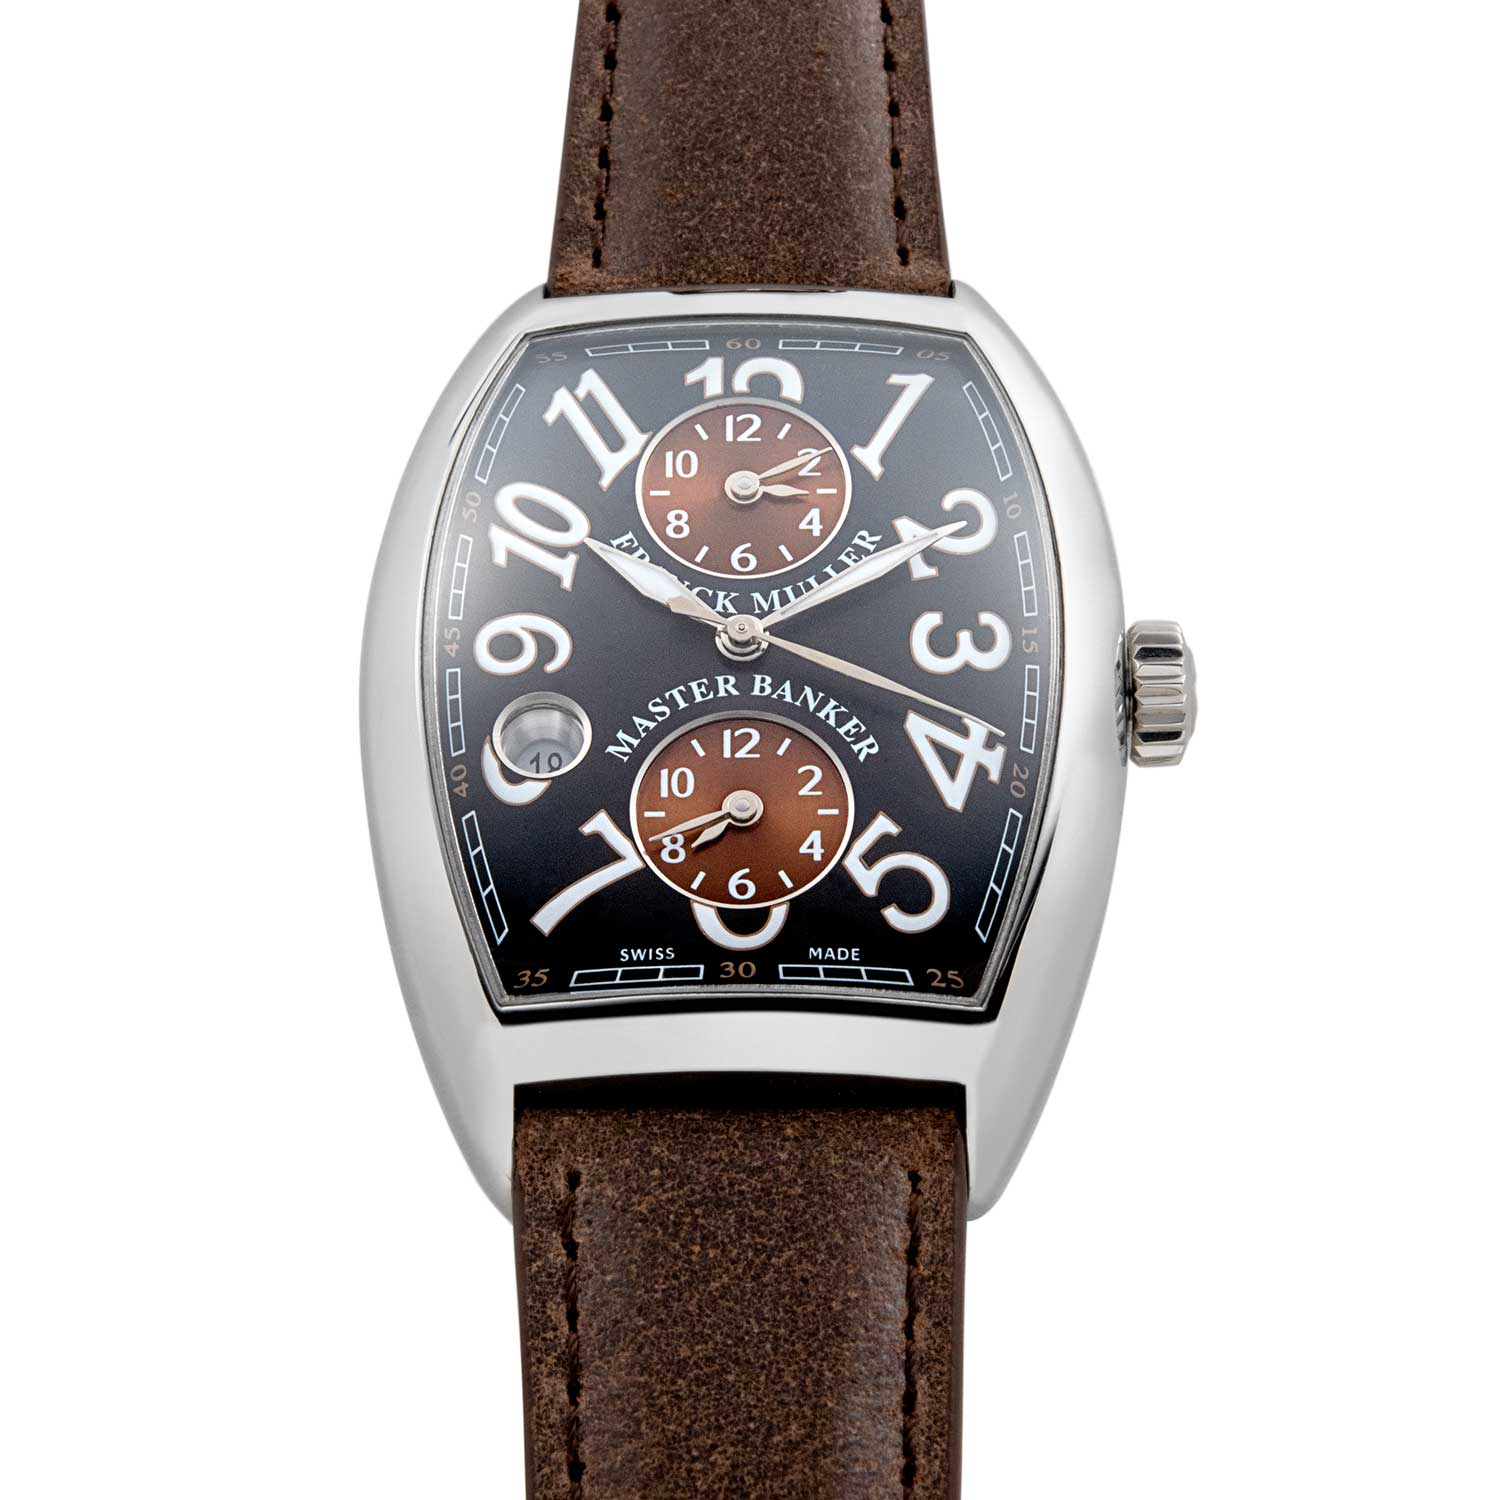 The Hour Glass 40th Anniversary Cintrée Curvex Master Banker Limited Edition